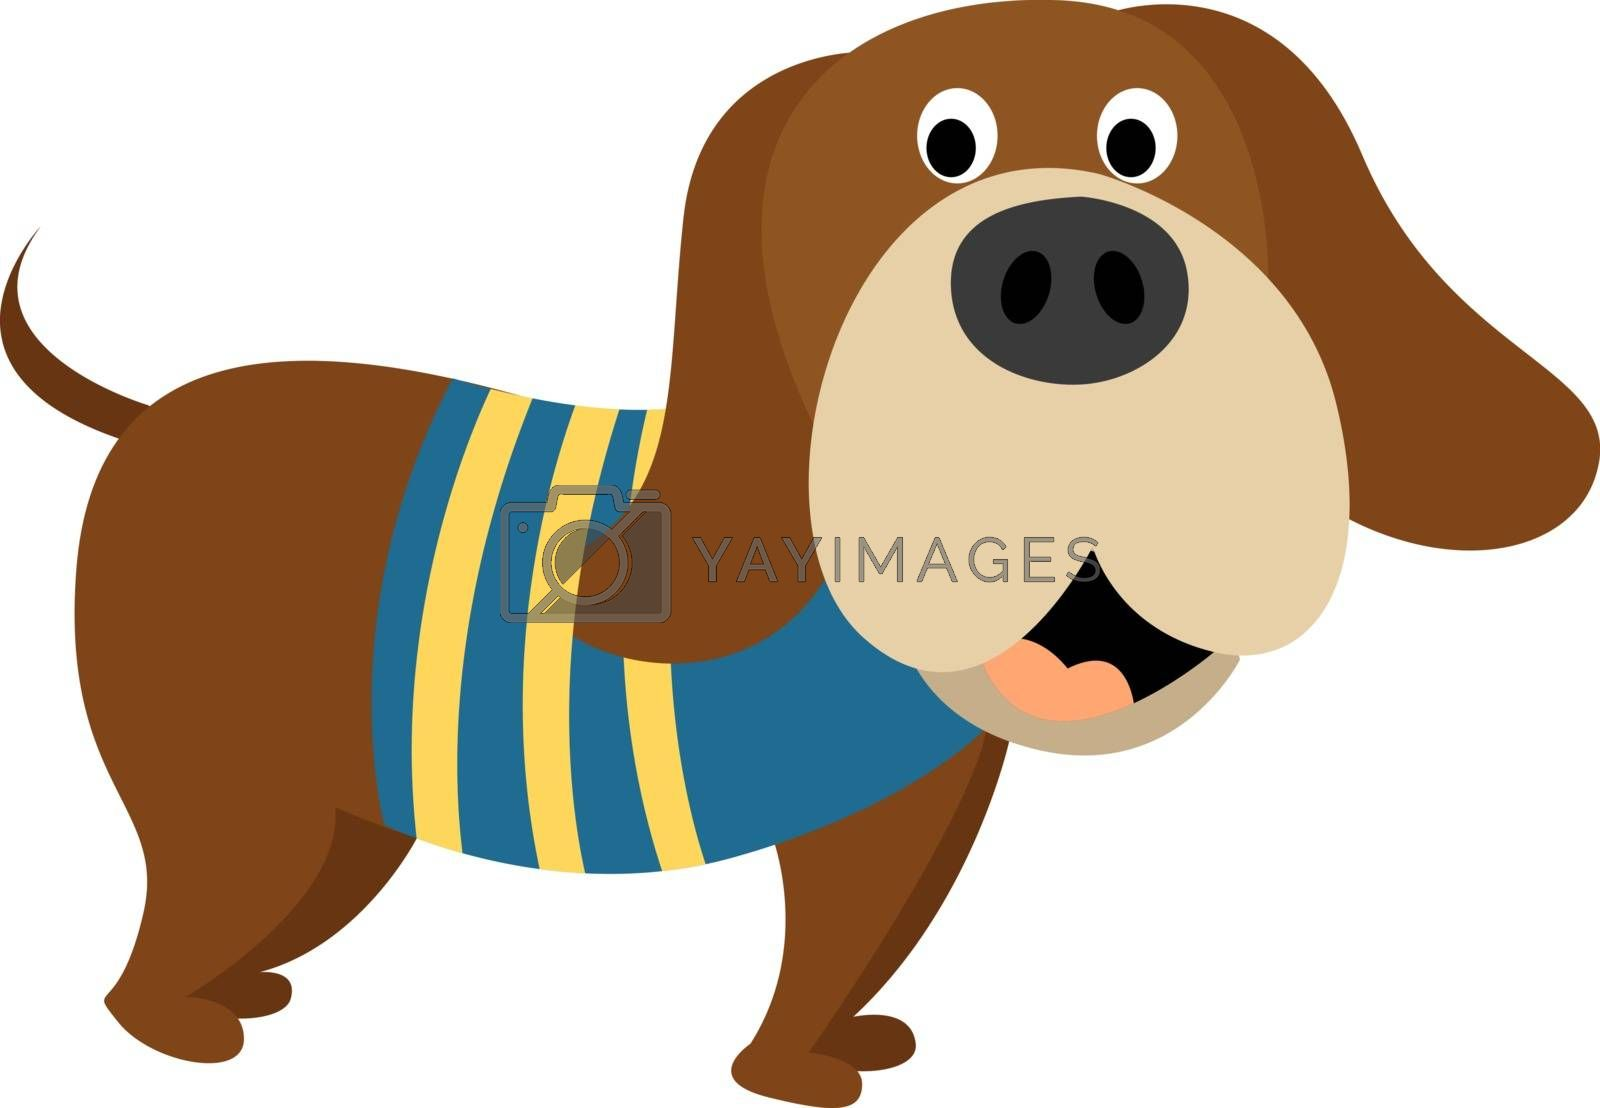 Dog in sweater, illustration, vector on white background.